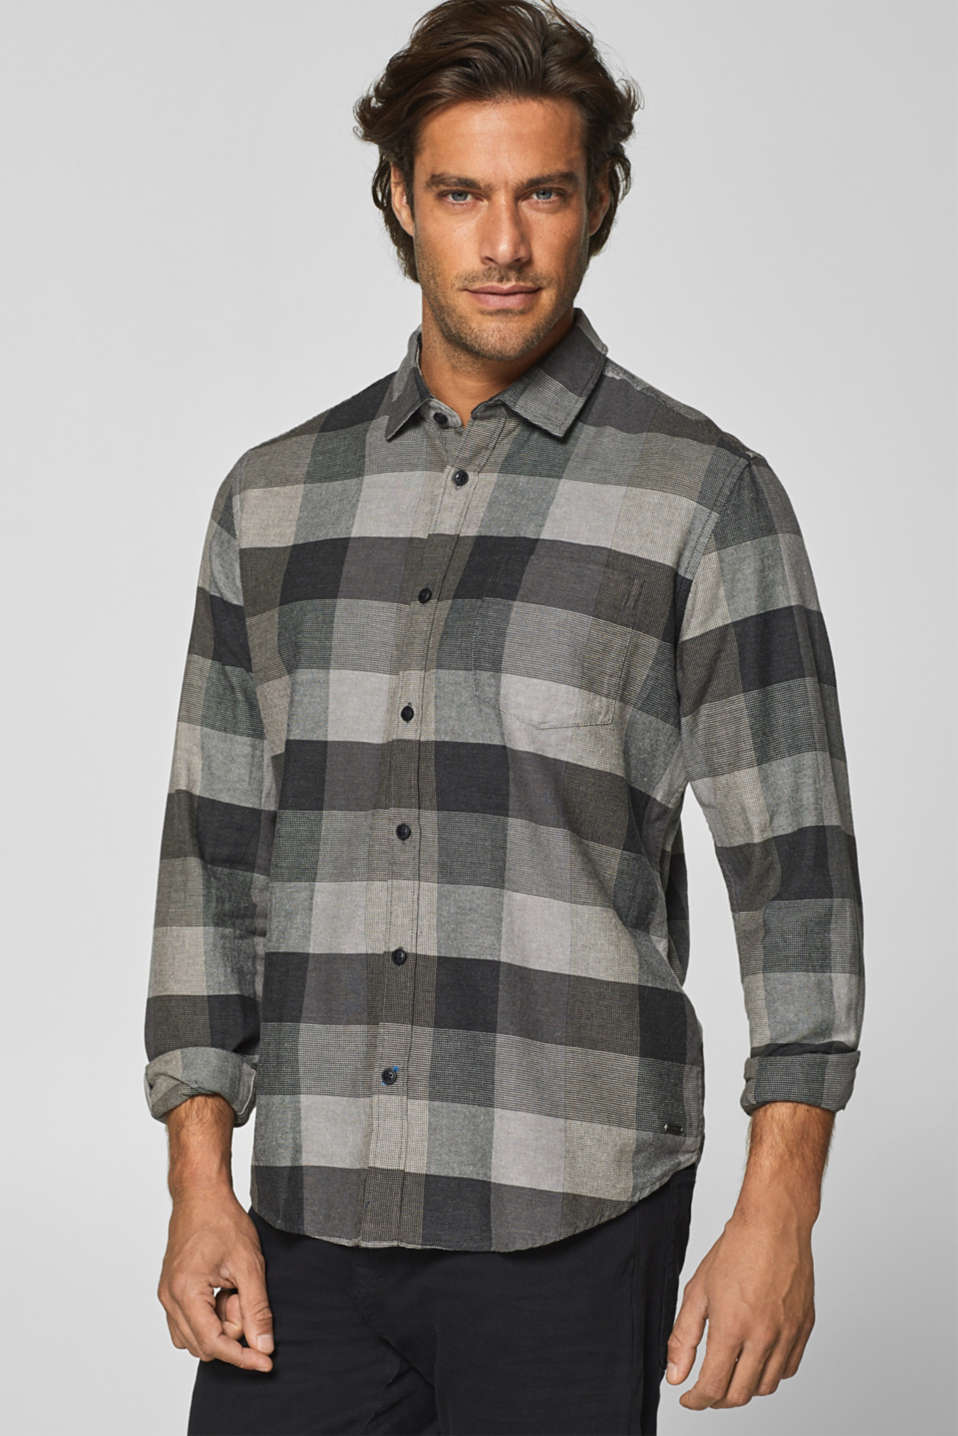 Esprit - Shirt with woven checks, 100% cotton